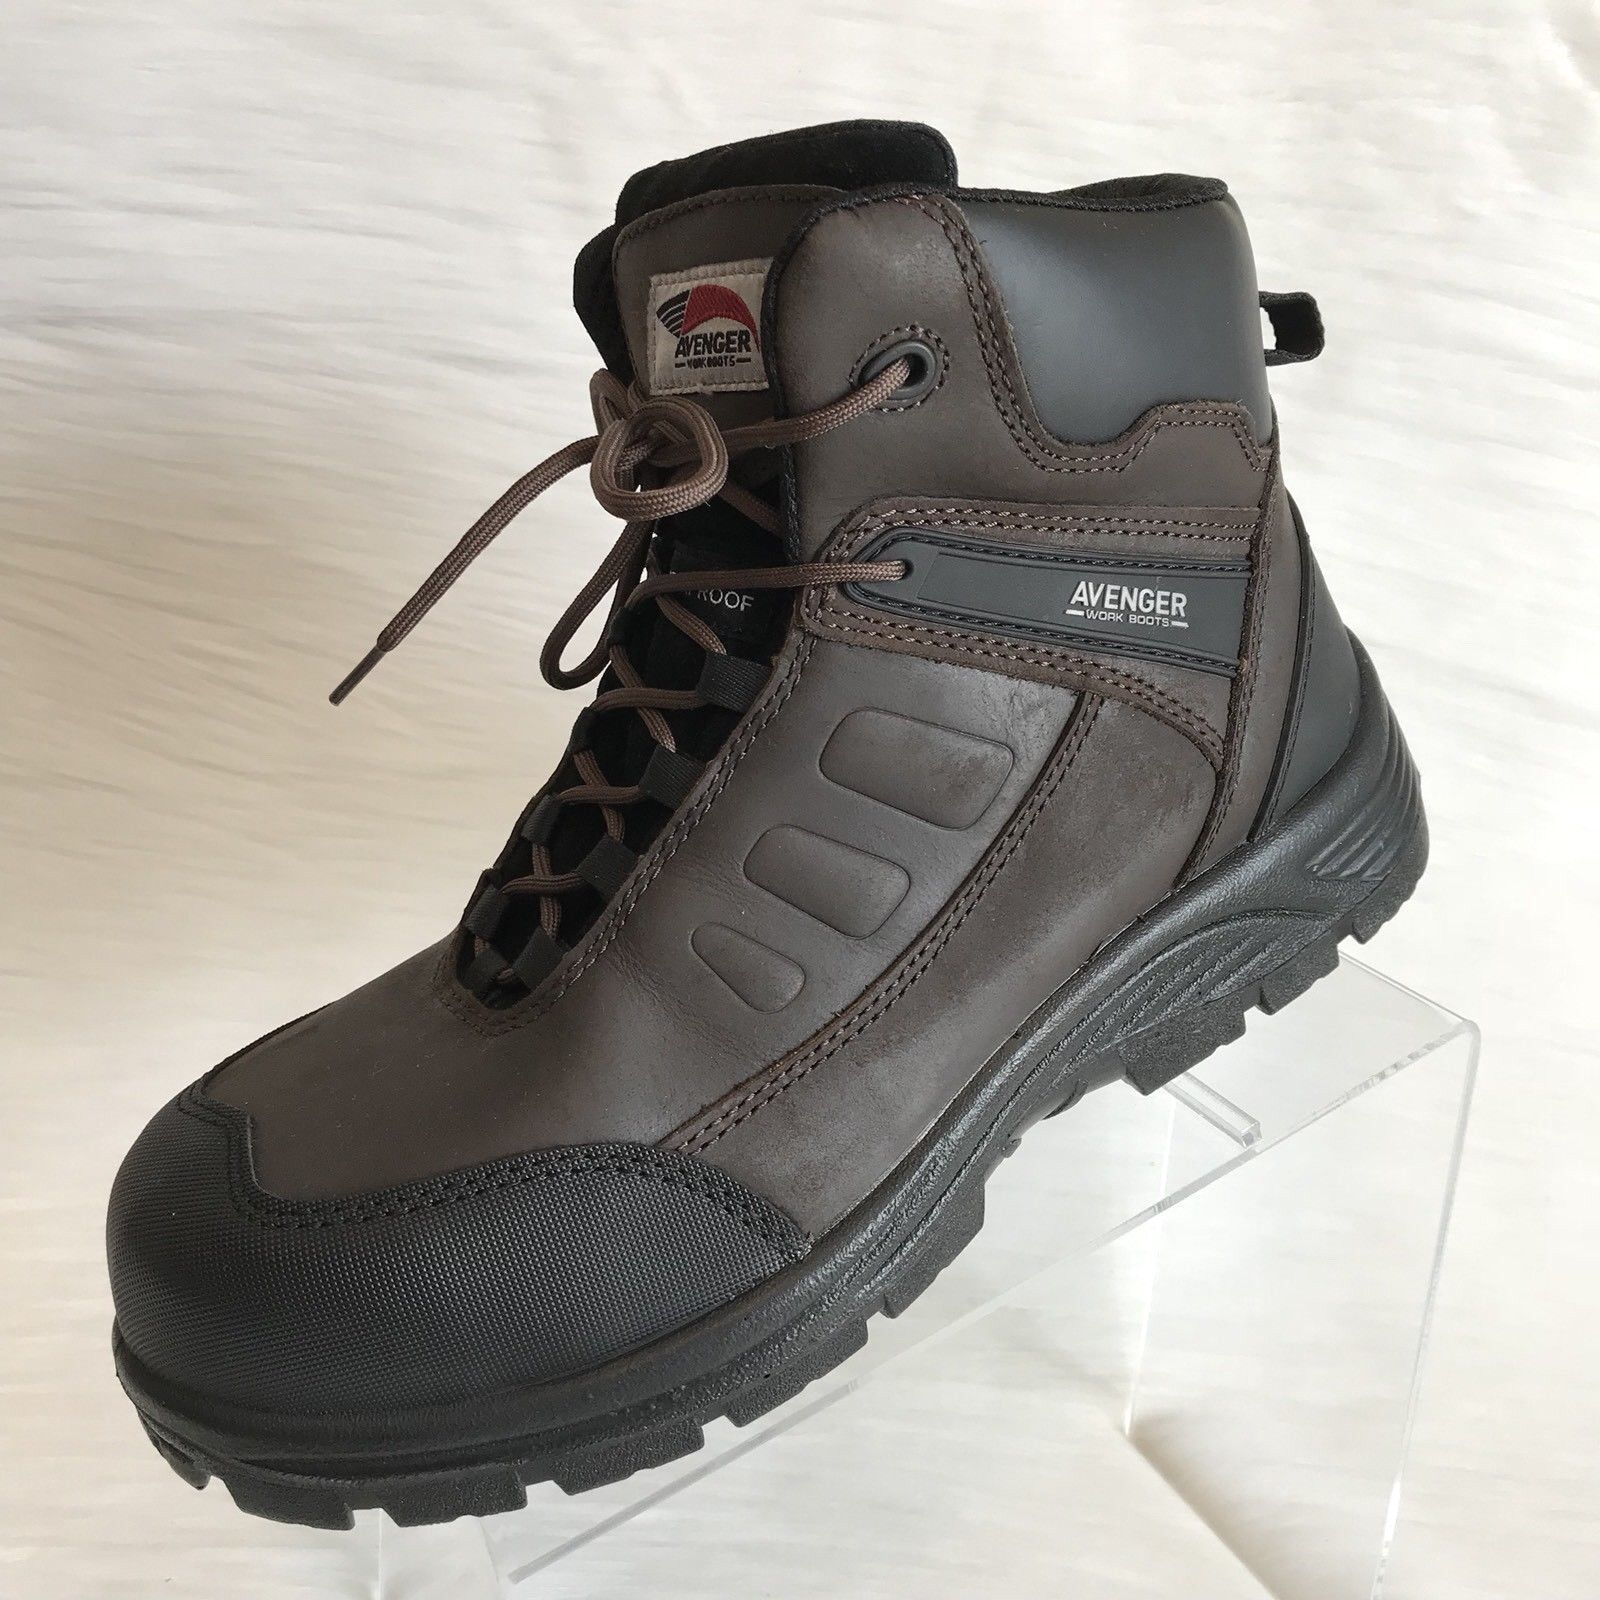 Avenger Men's Work Boots Brown leather A7296 size 12 M